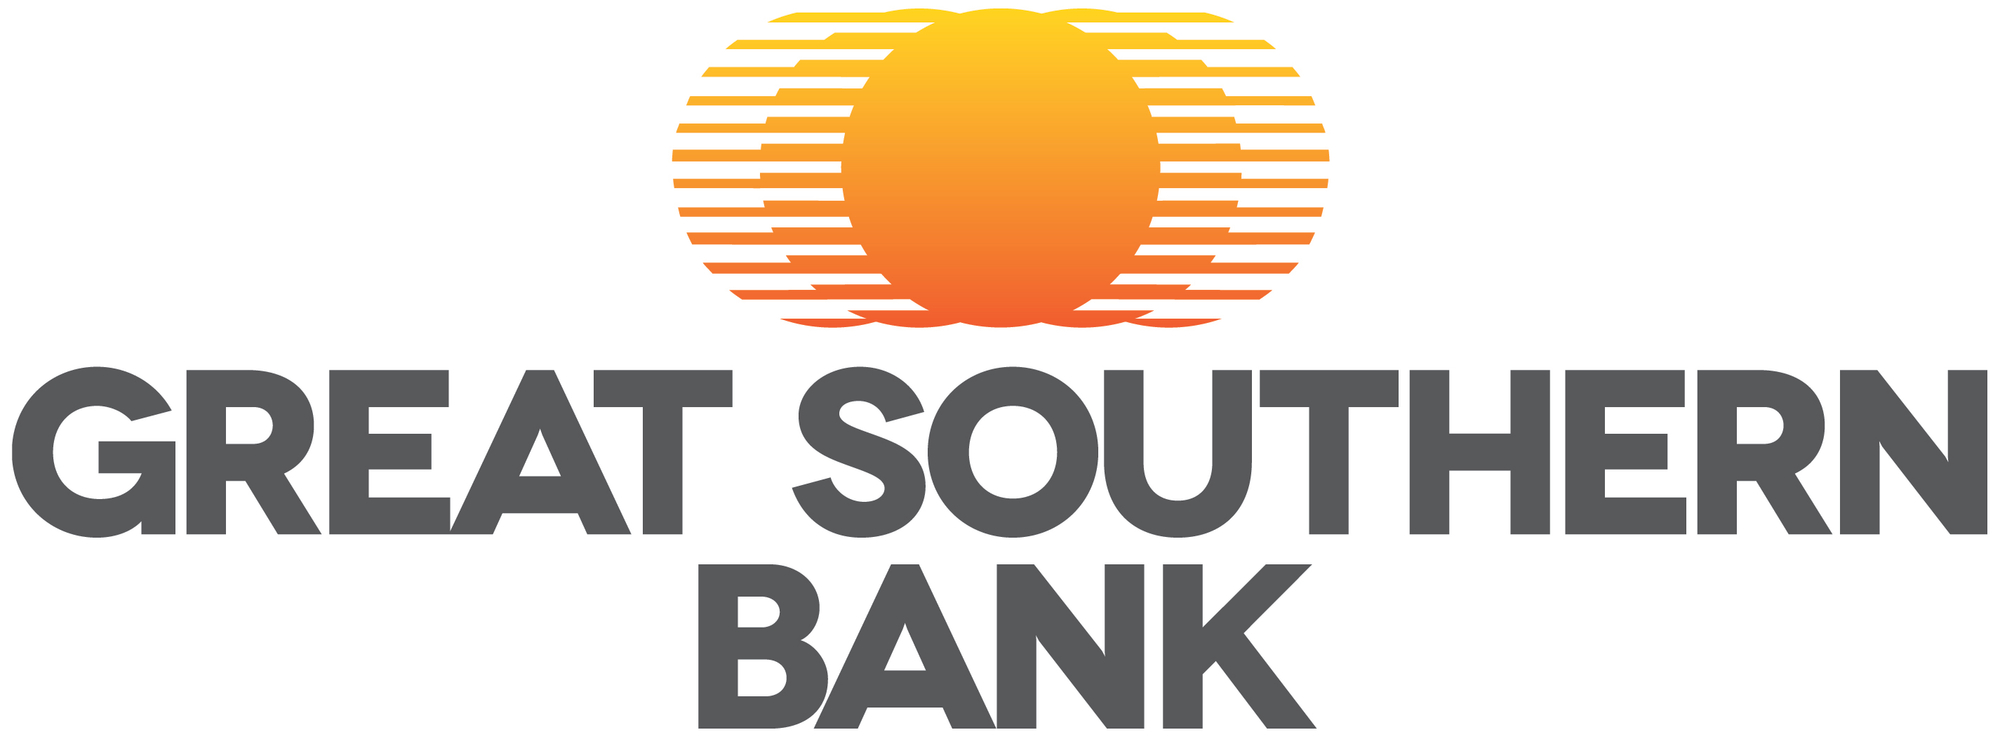 Great Southern Bank Logo